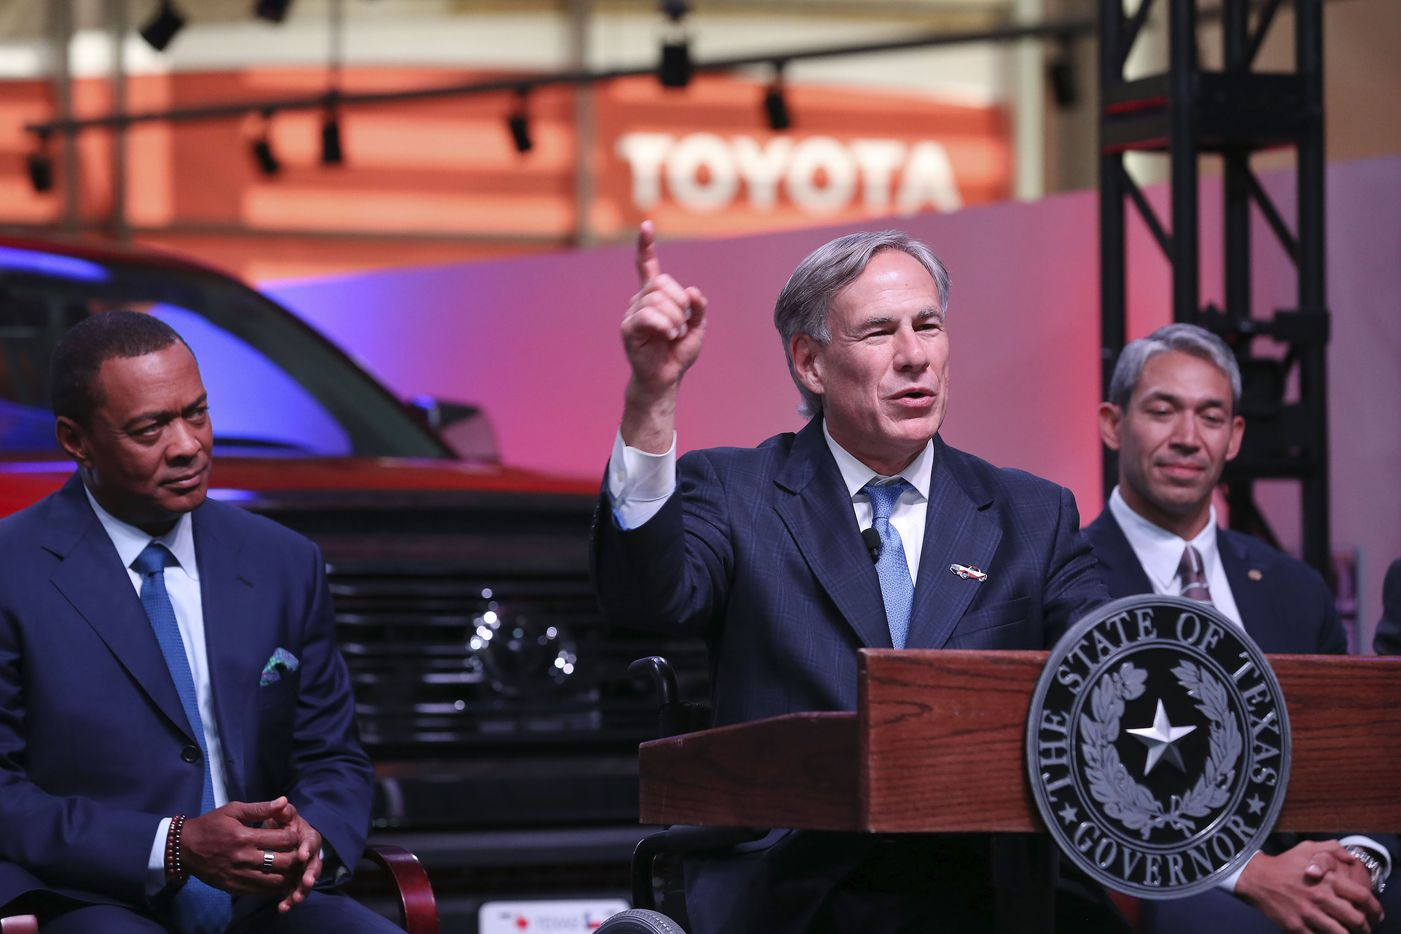 Texas Gov. Greg Abbott speaks during an event at the San Antonio Toyota plant, Tuesday, Sept. 17, 2019. Behind Abbott are Toyota Motor North America Chief Administrative Officer Christopher P. Reynolds, left, and San Antonio Mayor Ron Nirenberg, right.